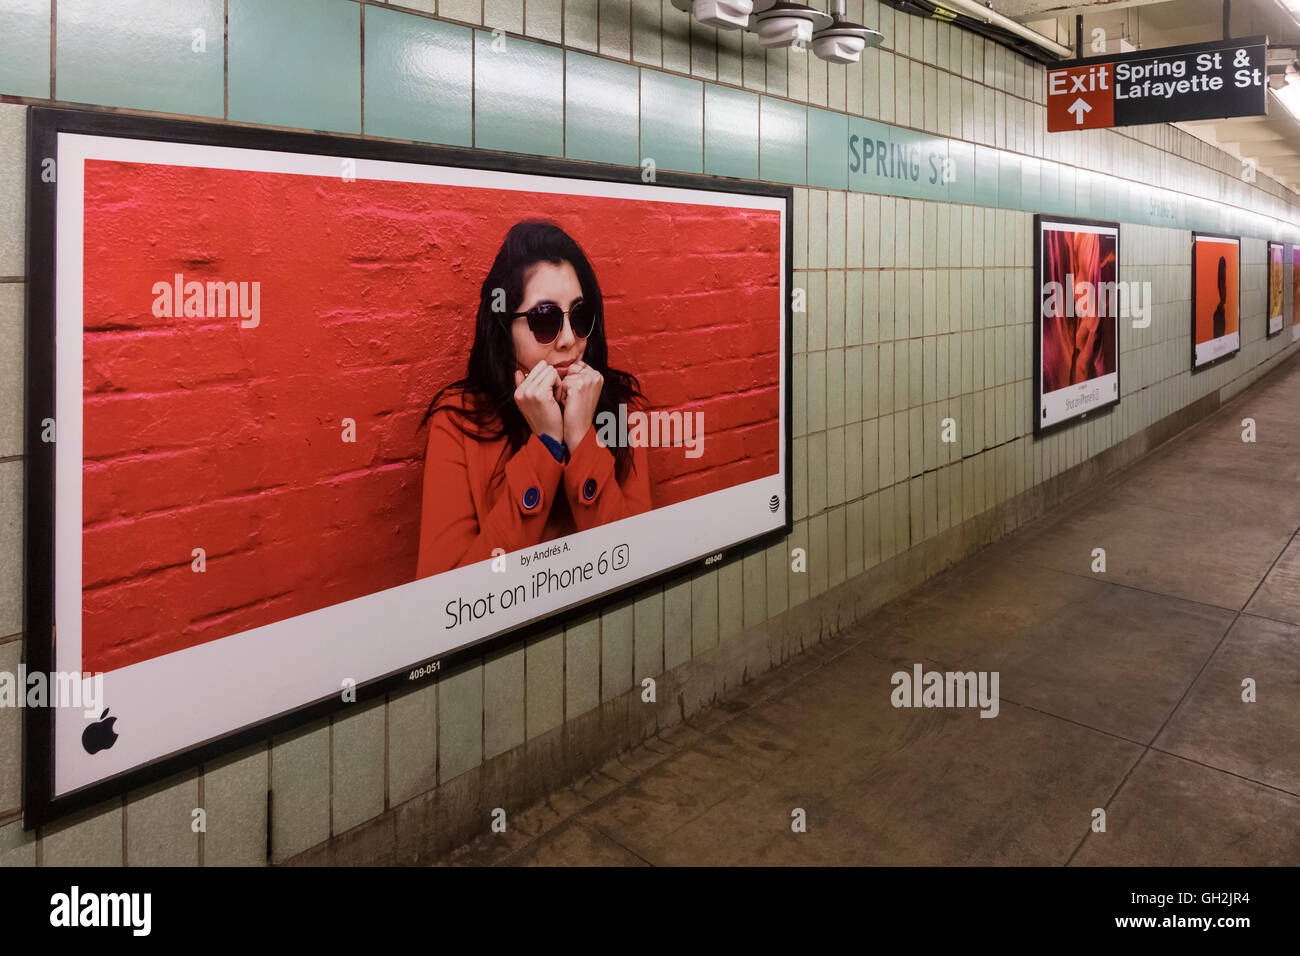 A series of poster size ads for Apple iPhone 6 S - Stock Image